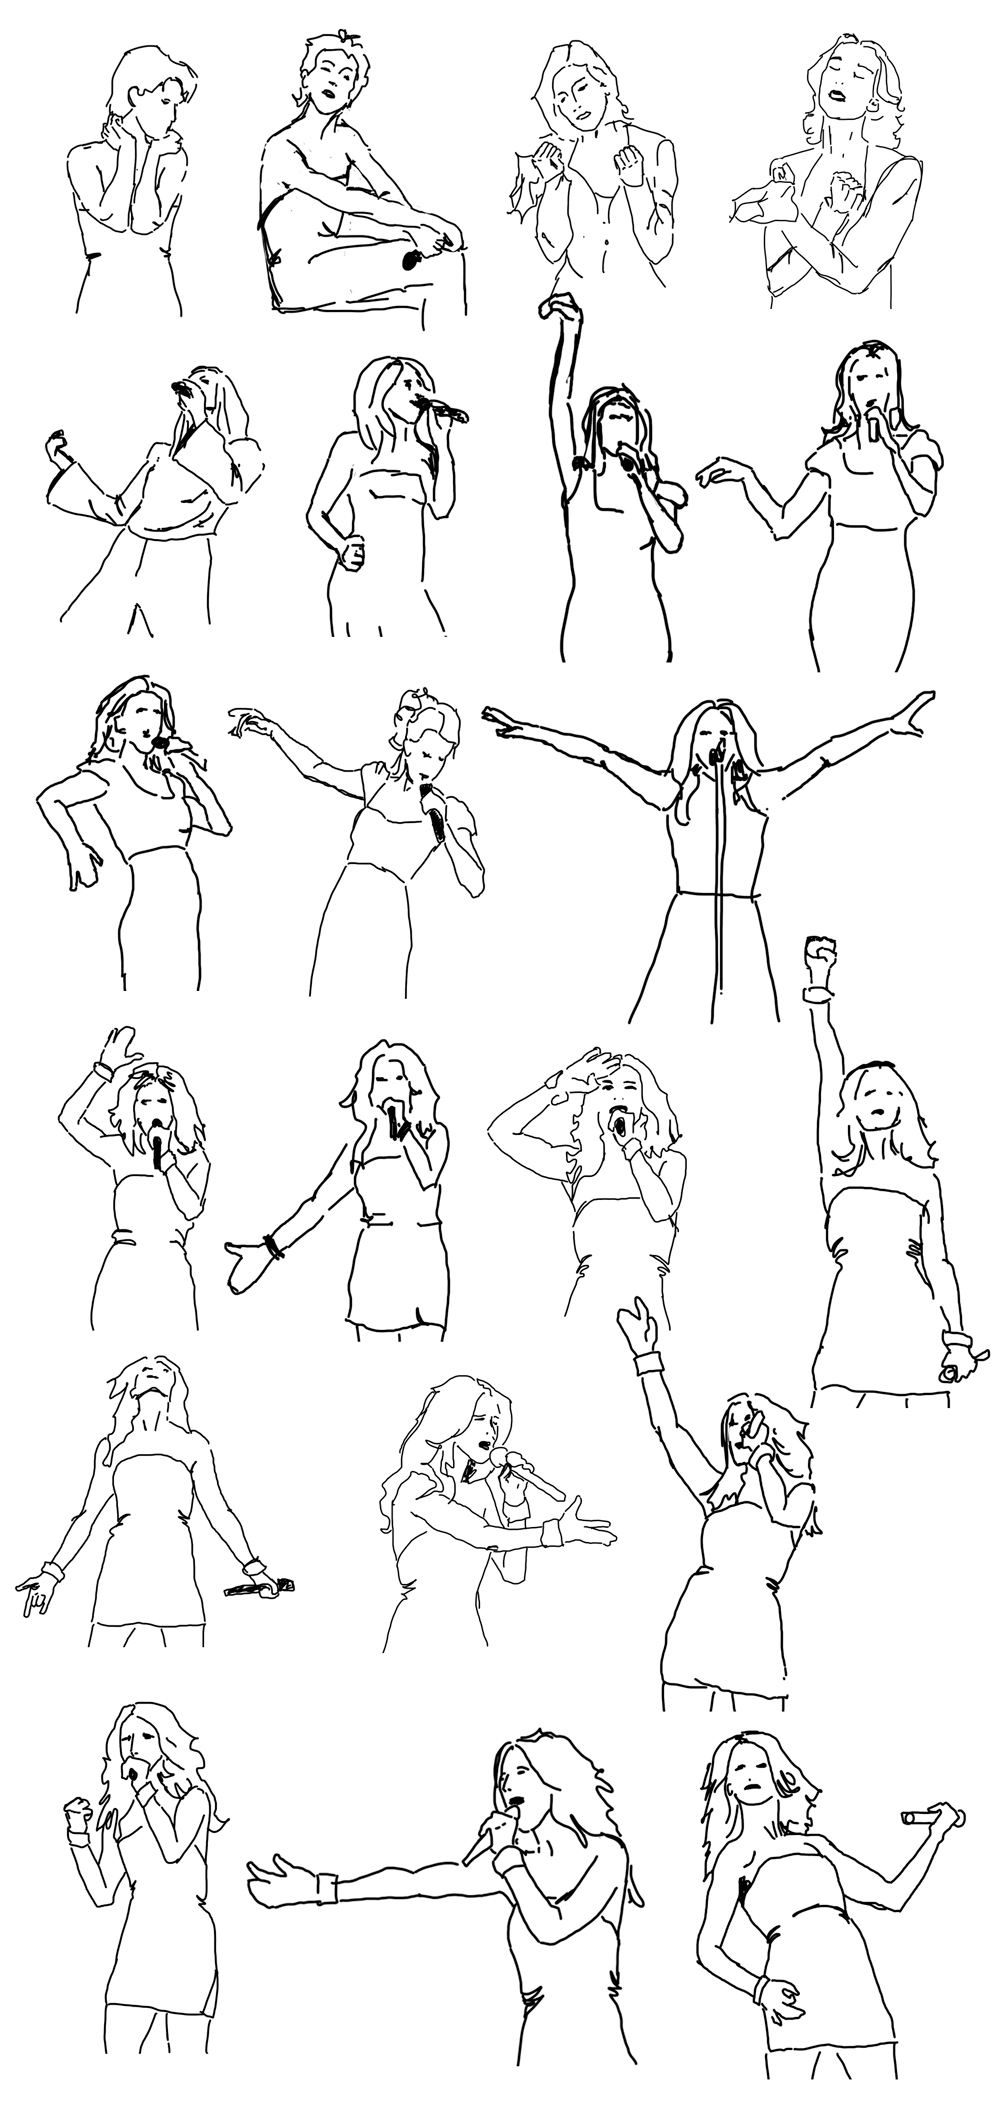 Celine-Dion-pose-sketches-collection.jpg